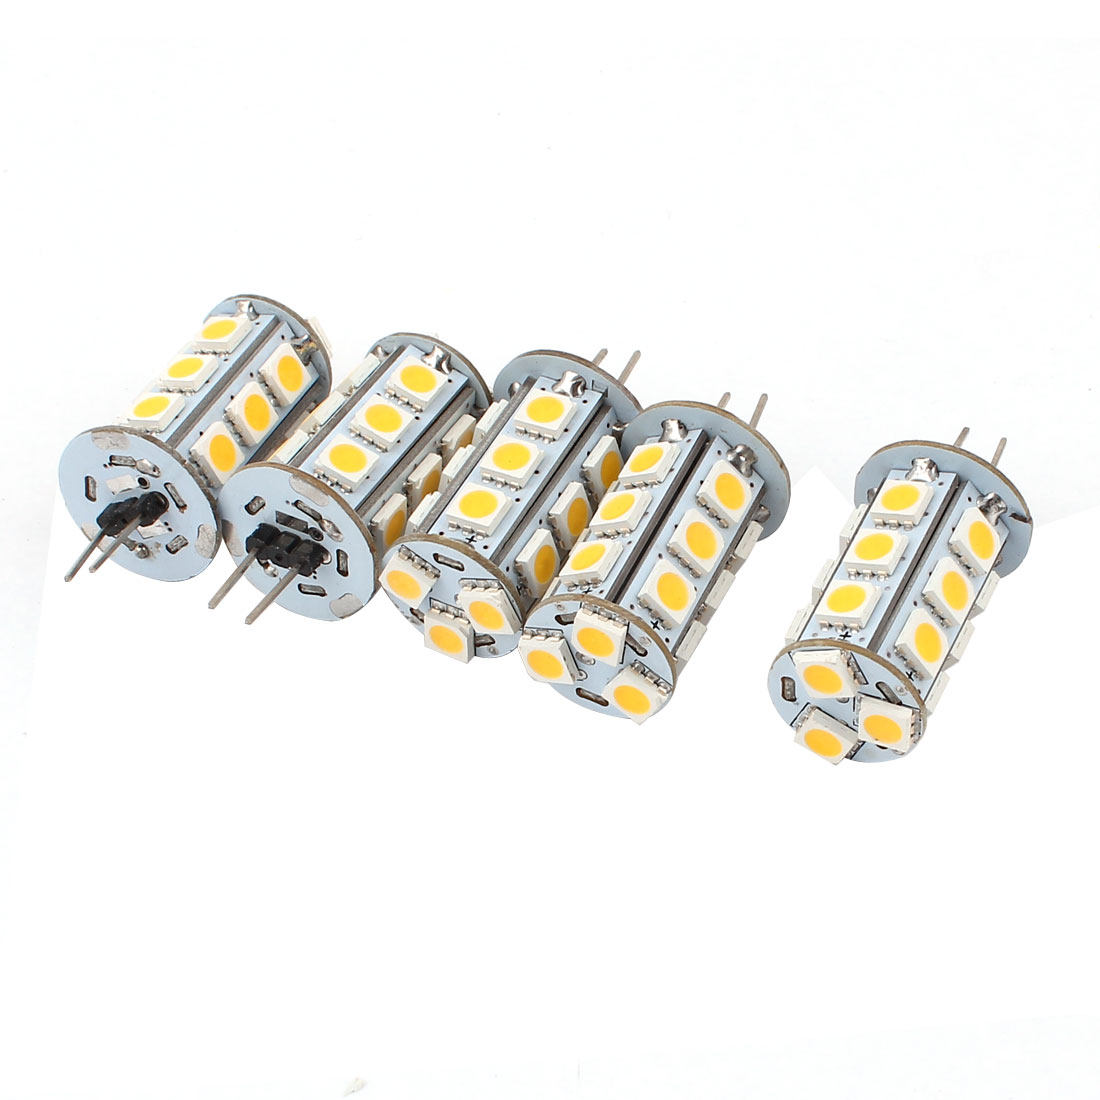 5 x 250-270Lm Energy Saving G4 5050 SMD 18 LED Light Bulb Lamp Warm White